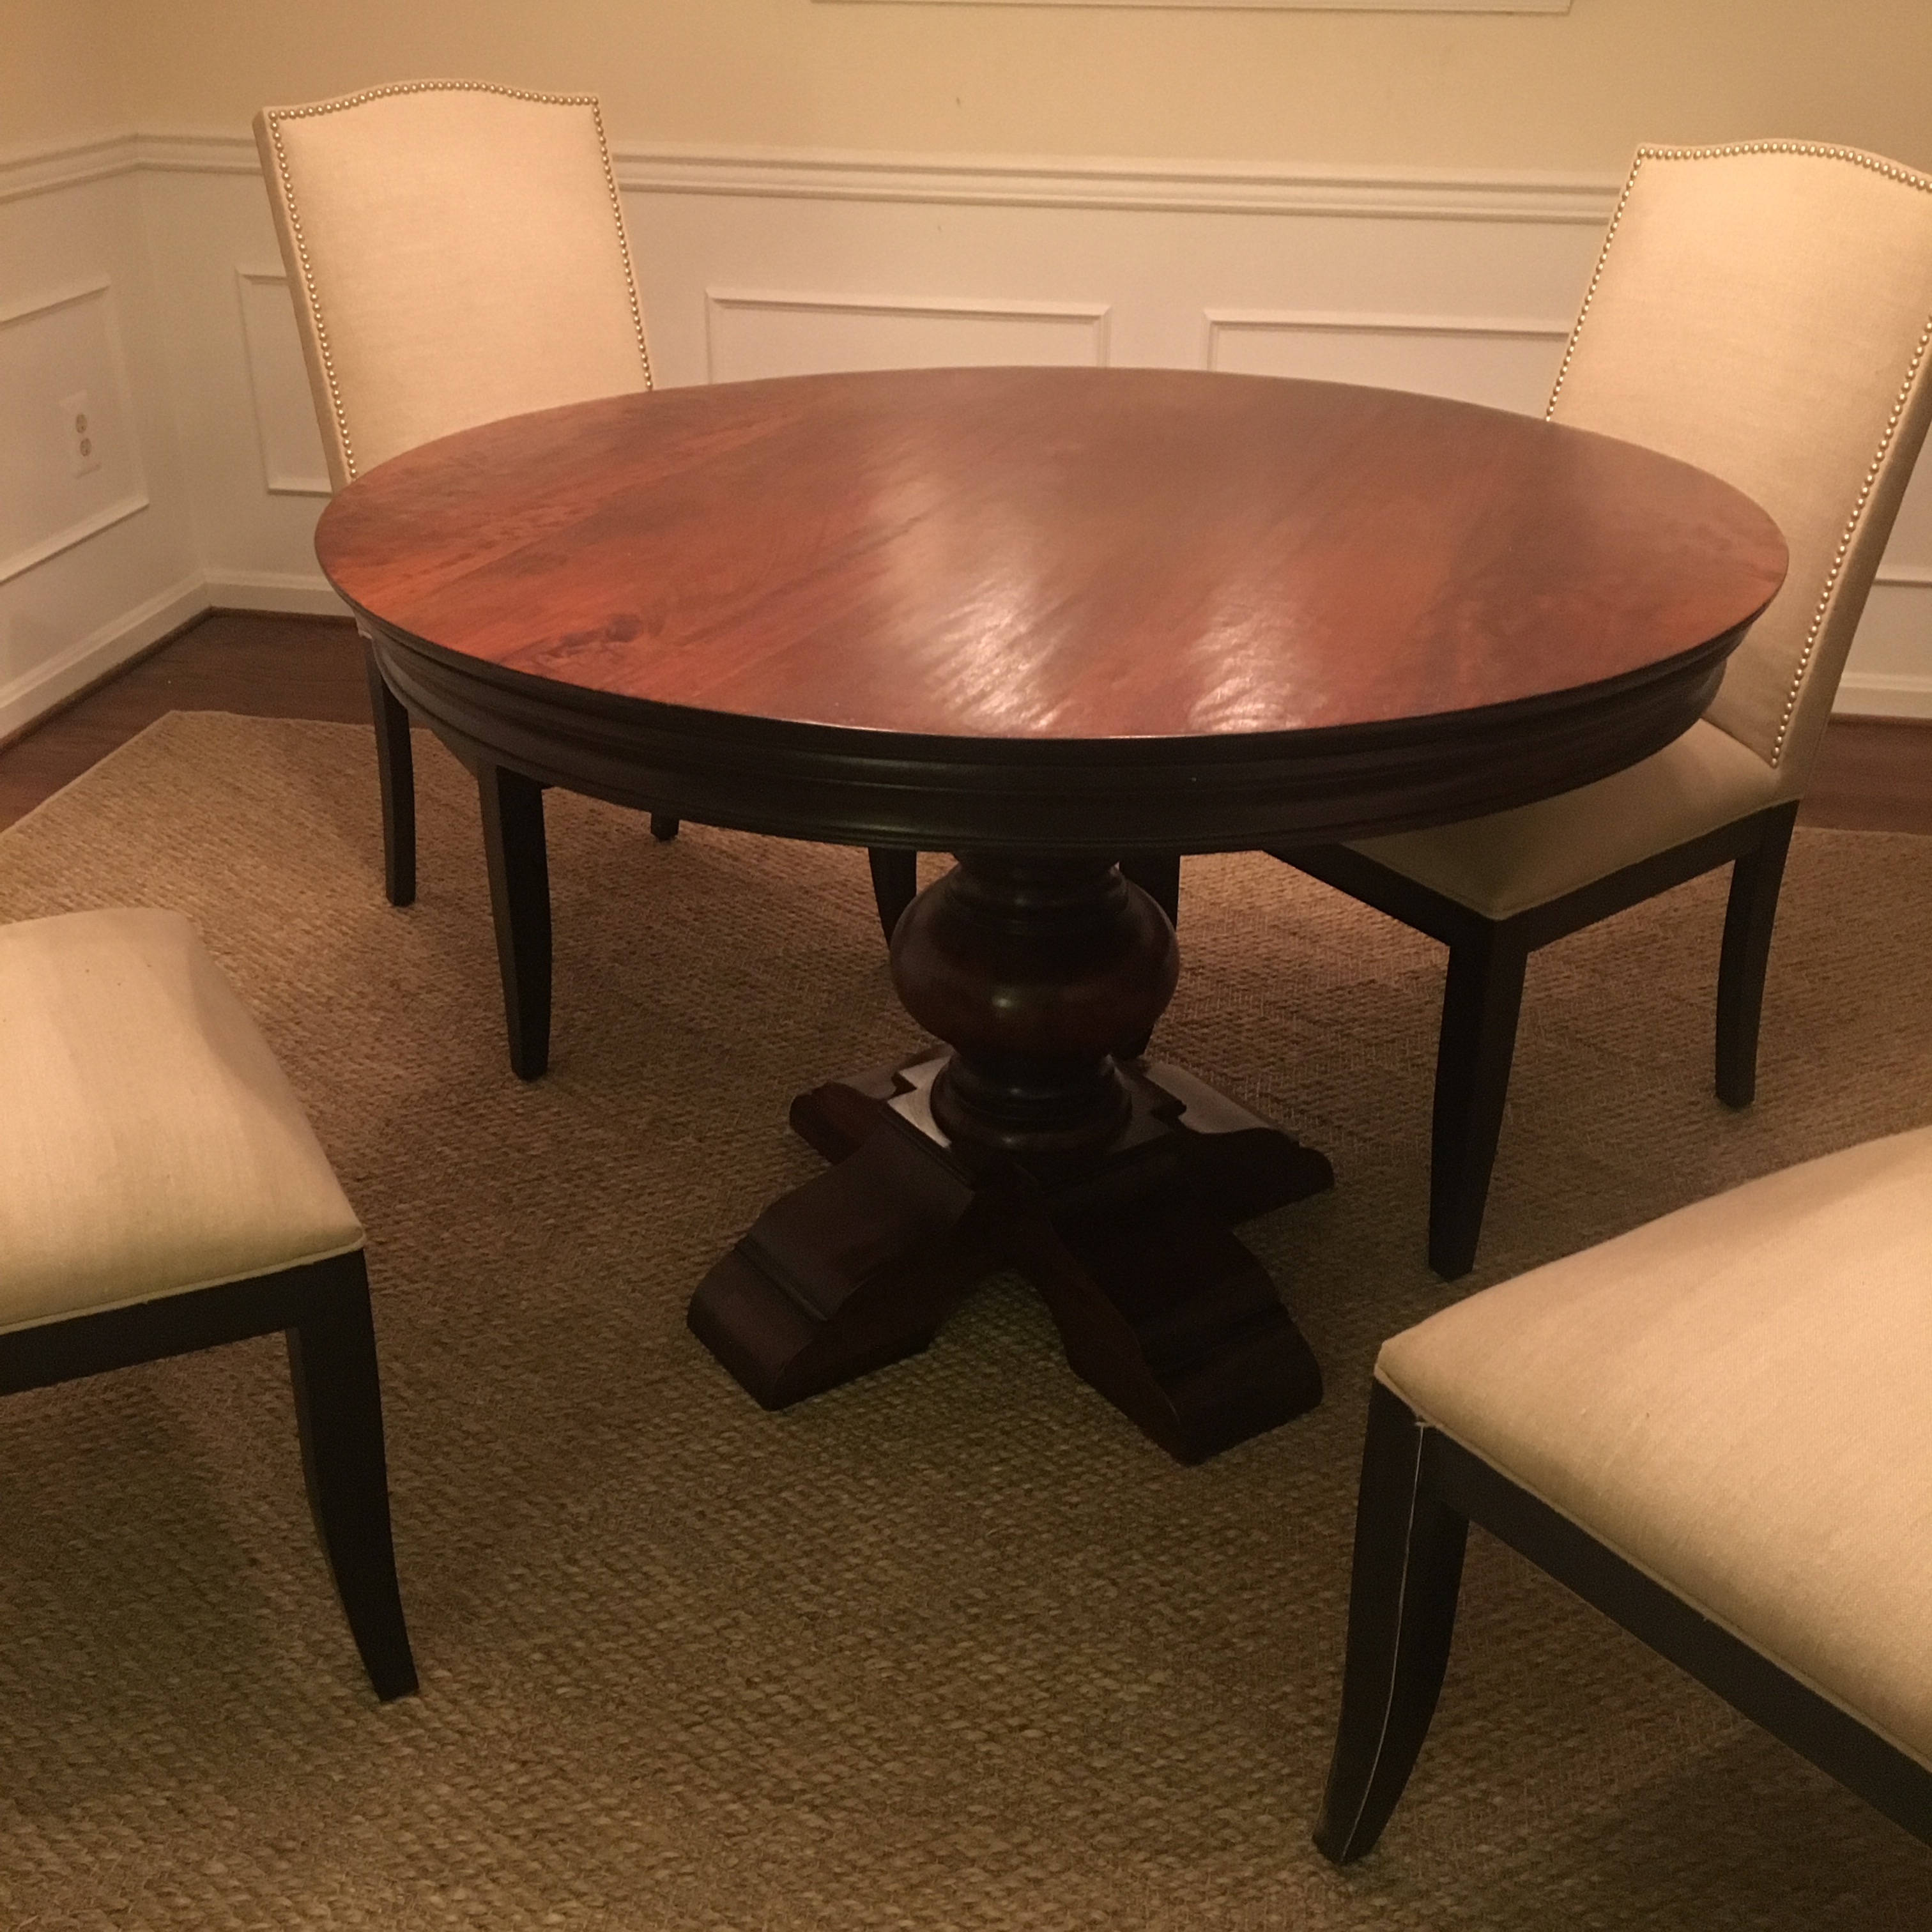 arhaus round dining table arhaus traditional dining table chairish 870